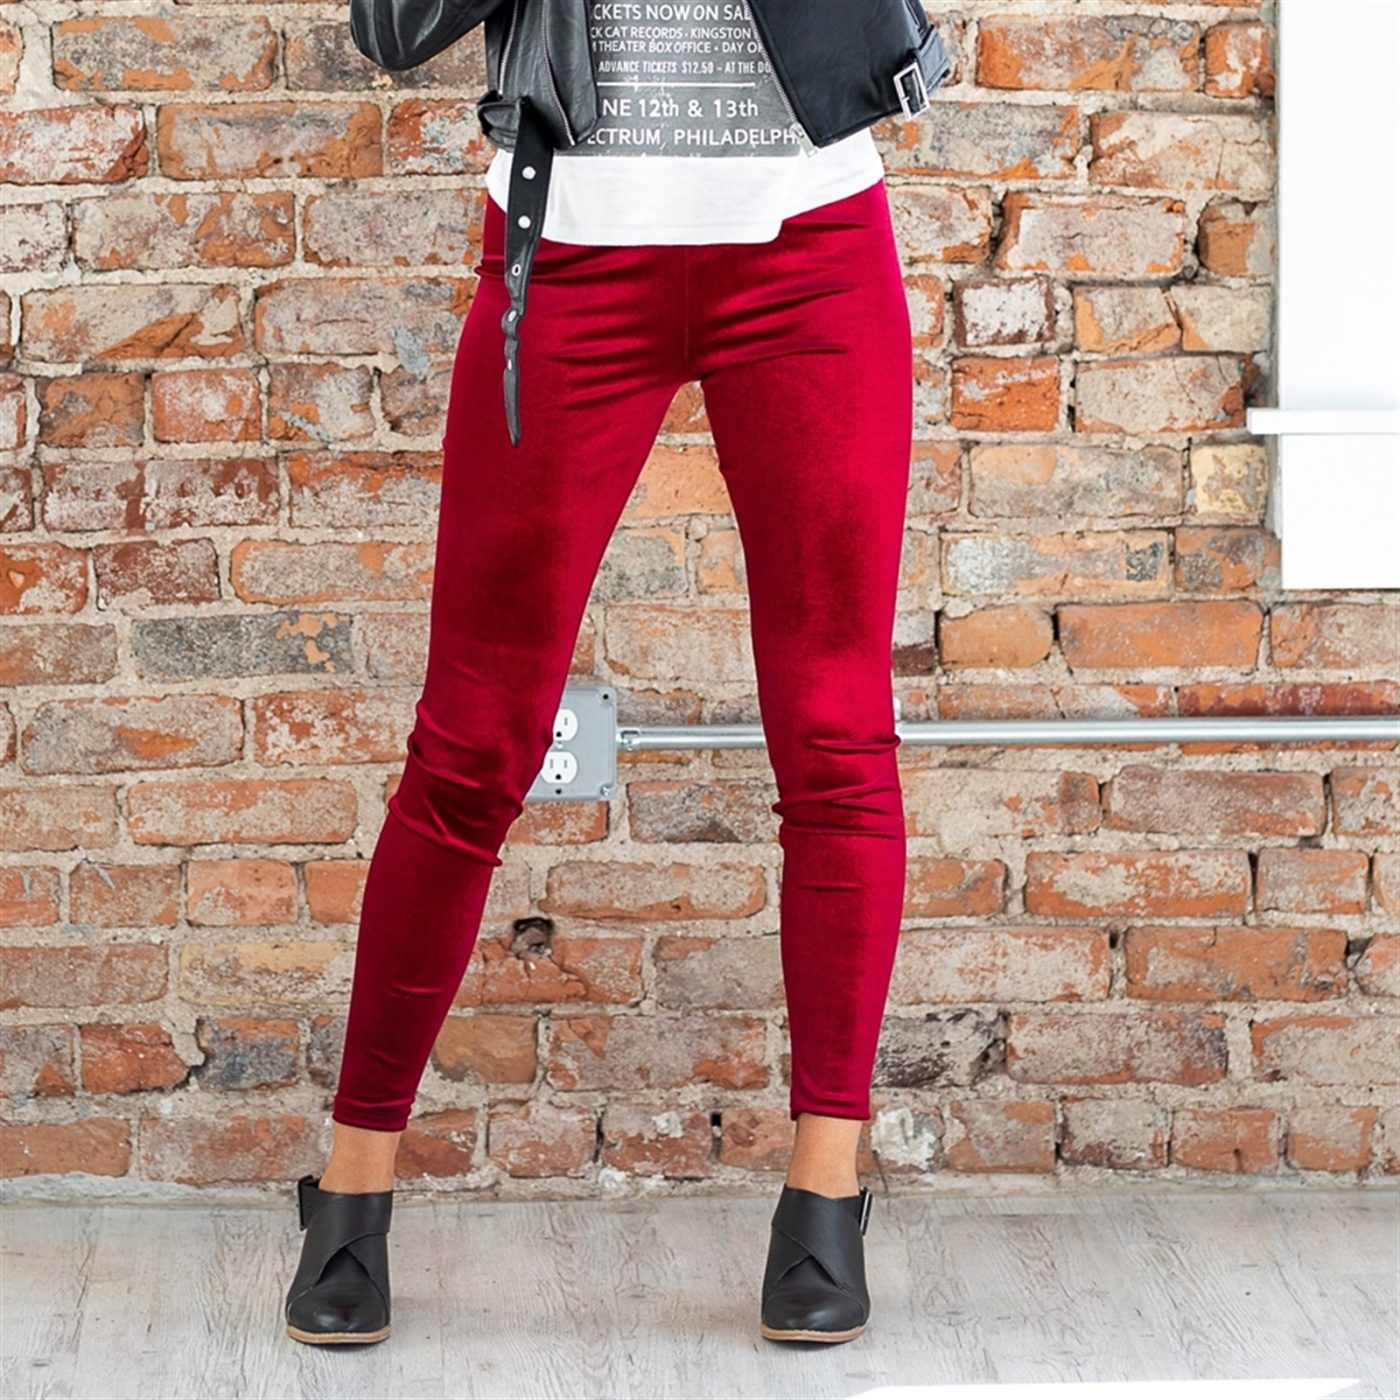 Was $29.99 - Now $12.99 - Velvet Leggings | Free Shipping (10/15 to 10/17)